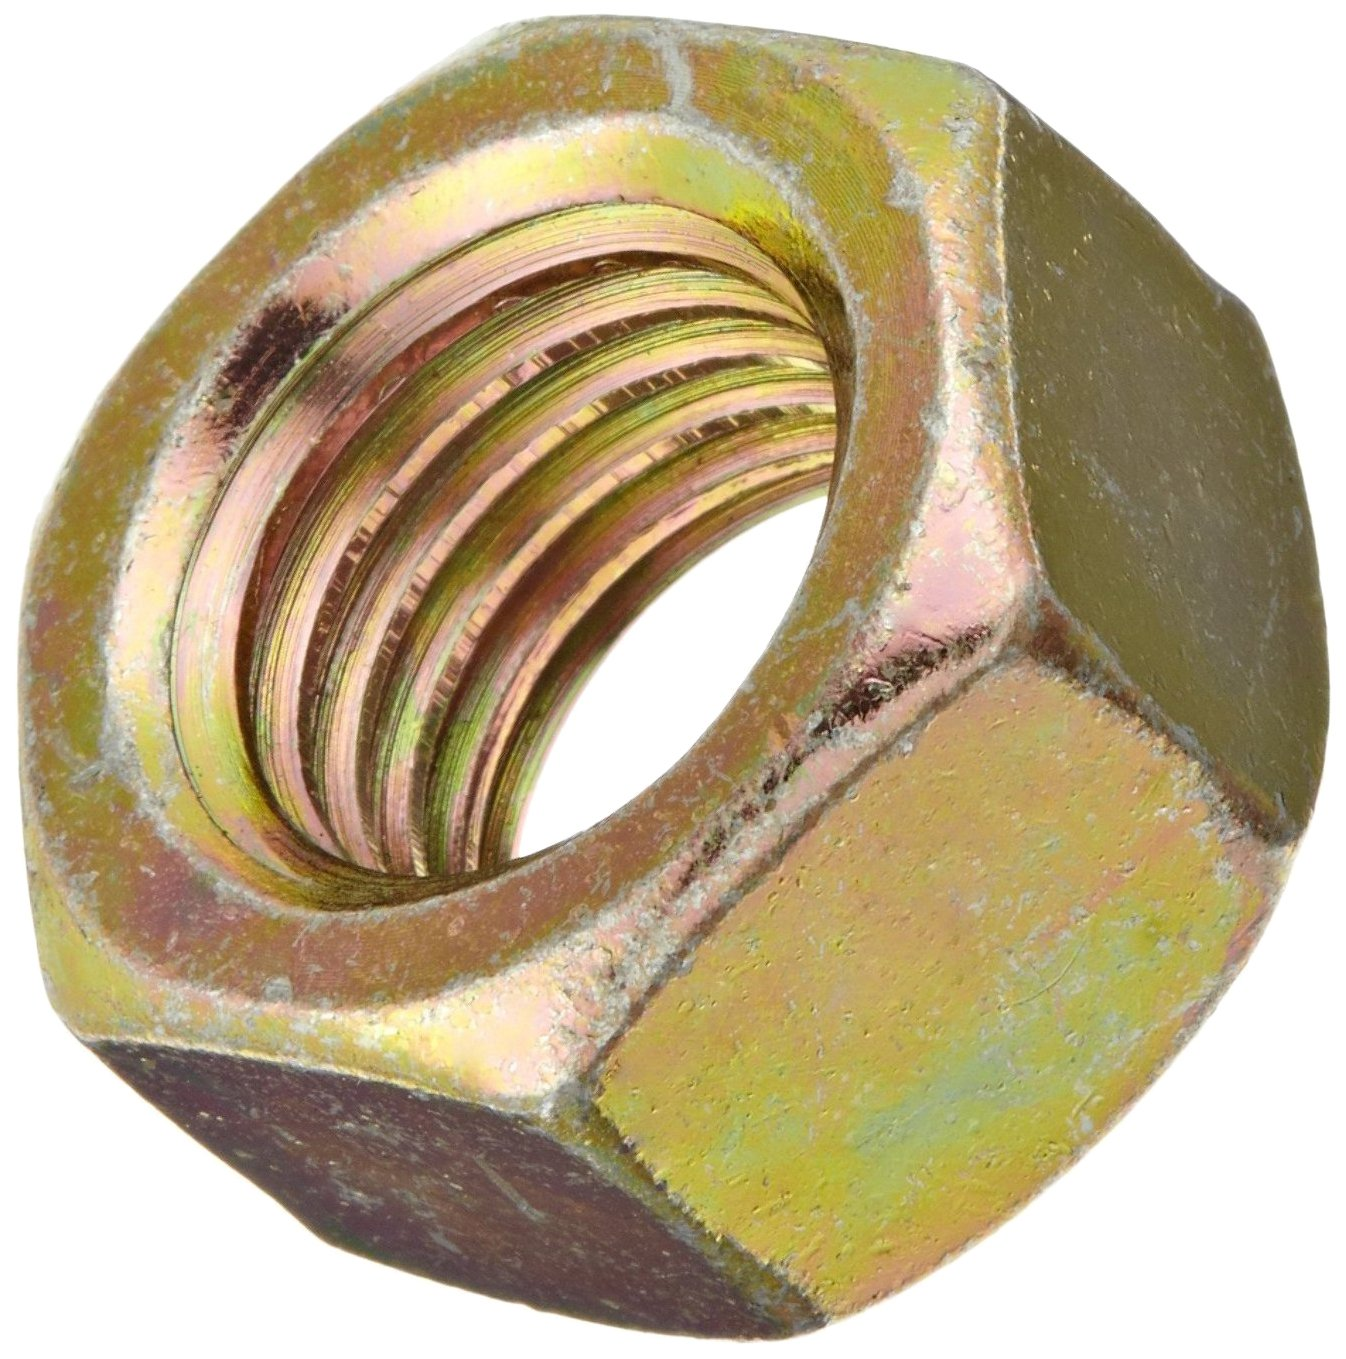 Plain Finish M12-1.5 Thread Size DIN 934 Metric 18-8 Stainless Steel Hex Nut Small Parts Pack of 5 10 mm Thick 19 mm Width Across Flats